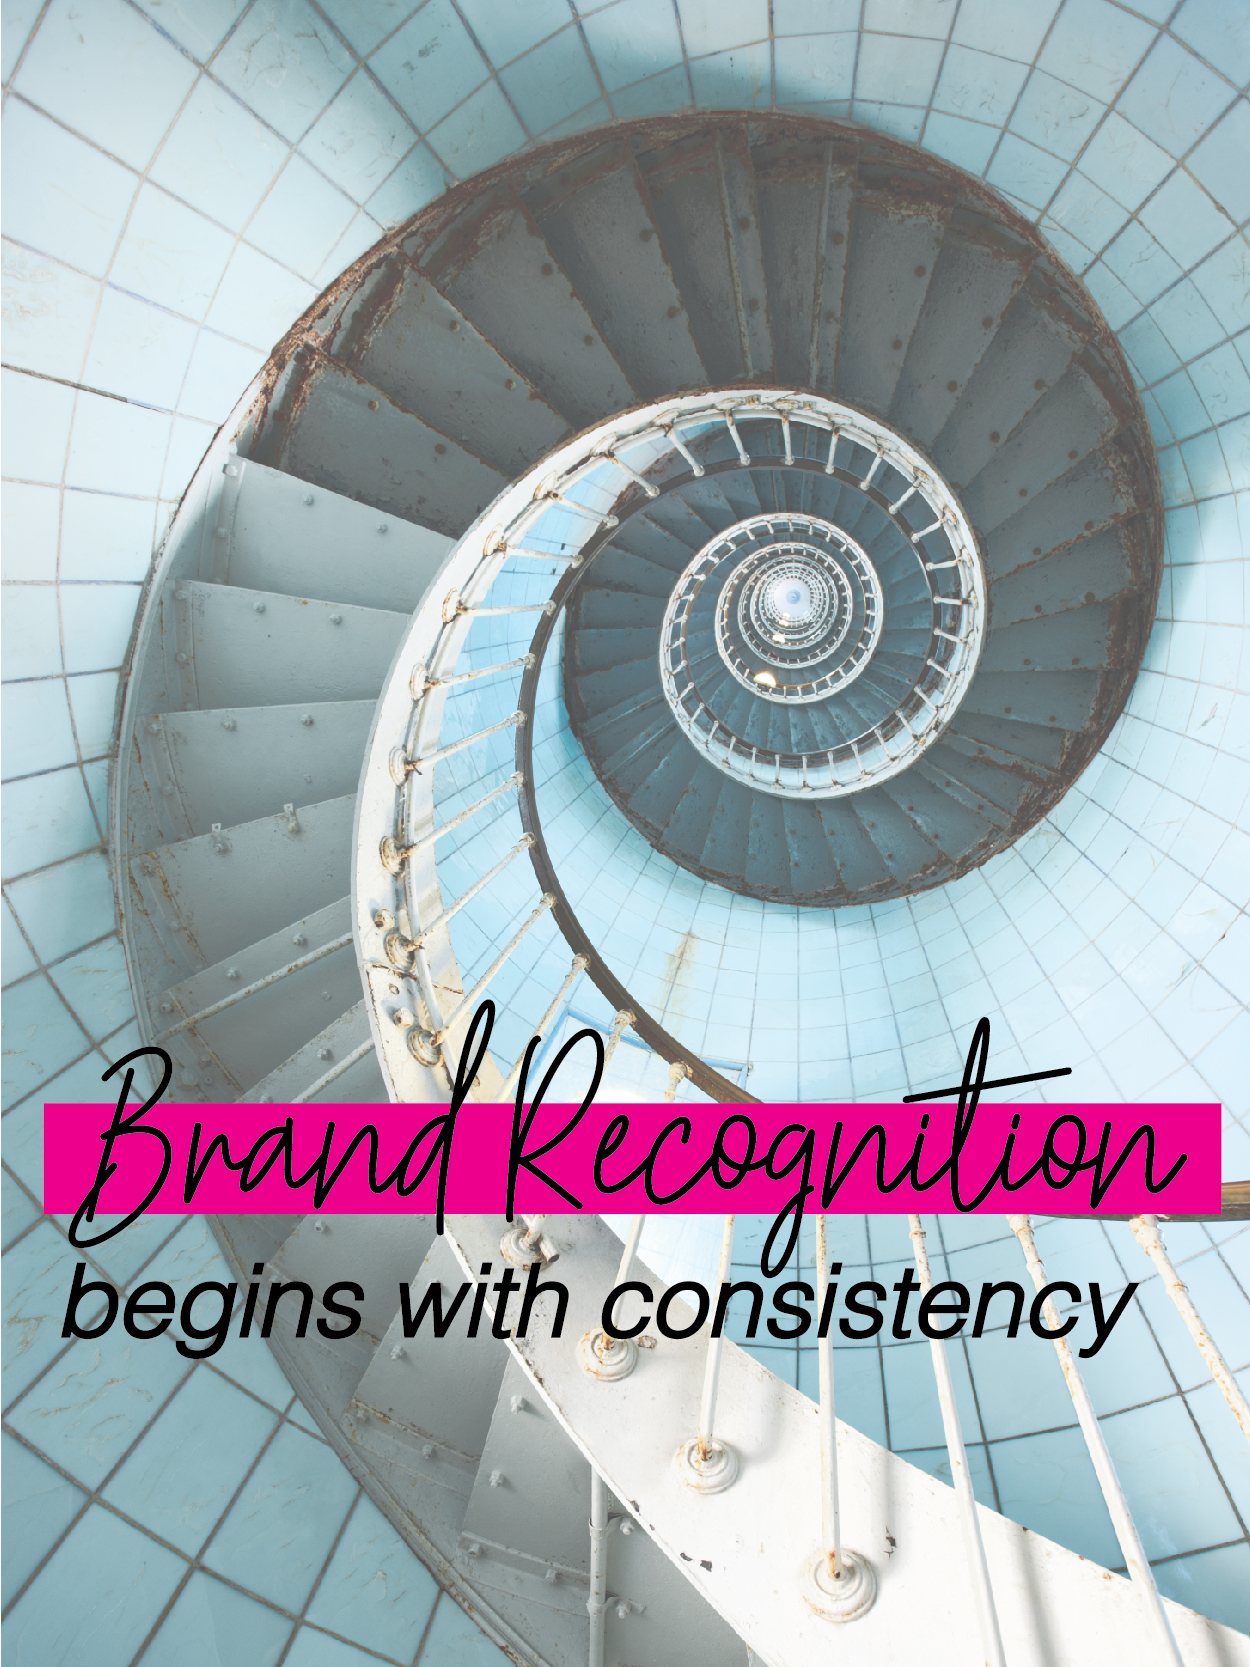 Brand CONTEXT starts with Consistency